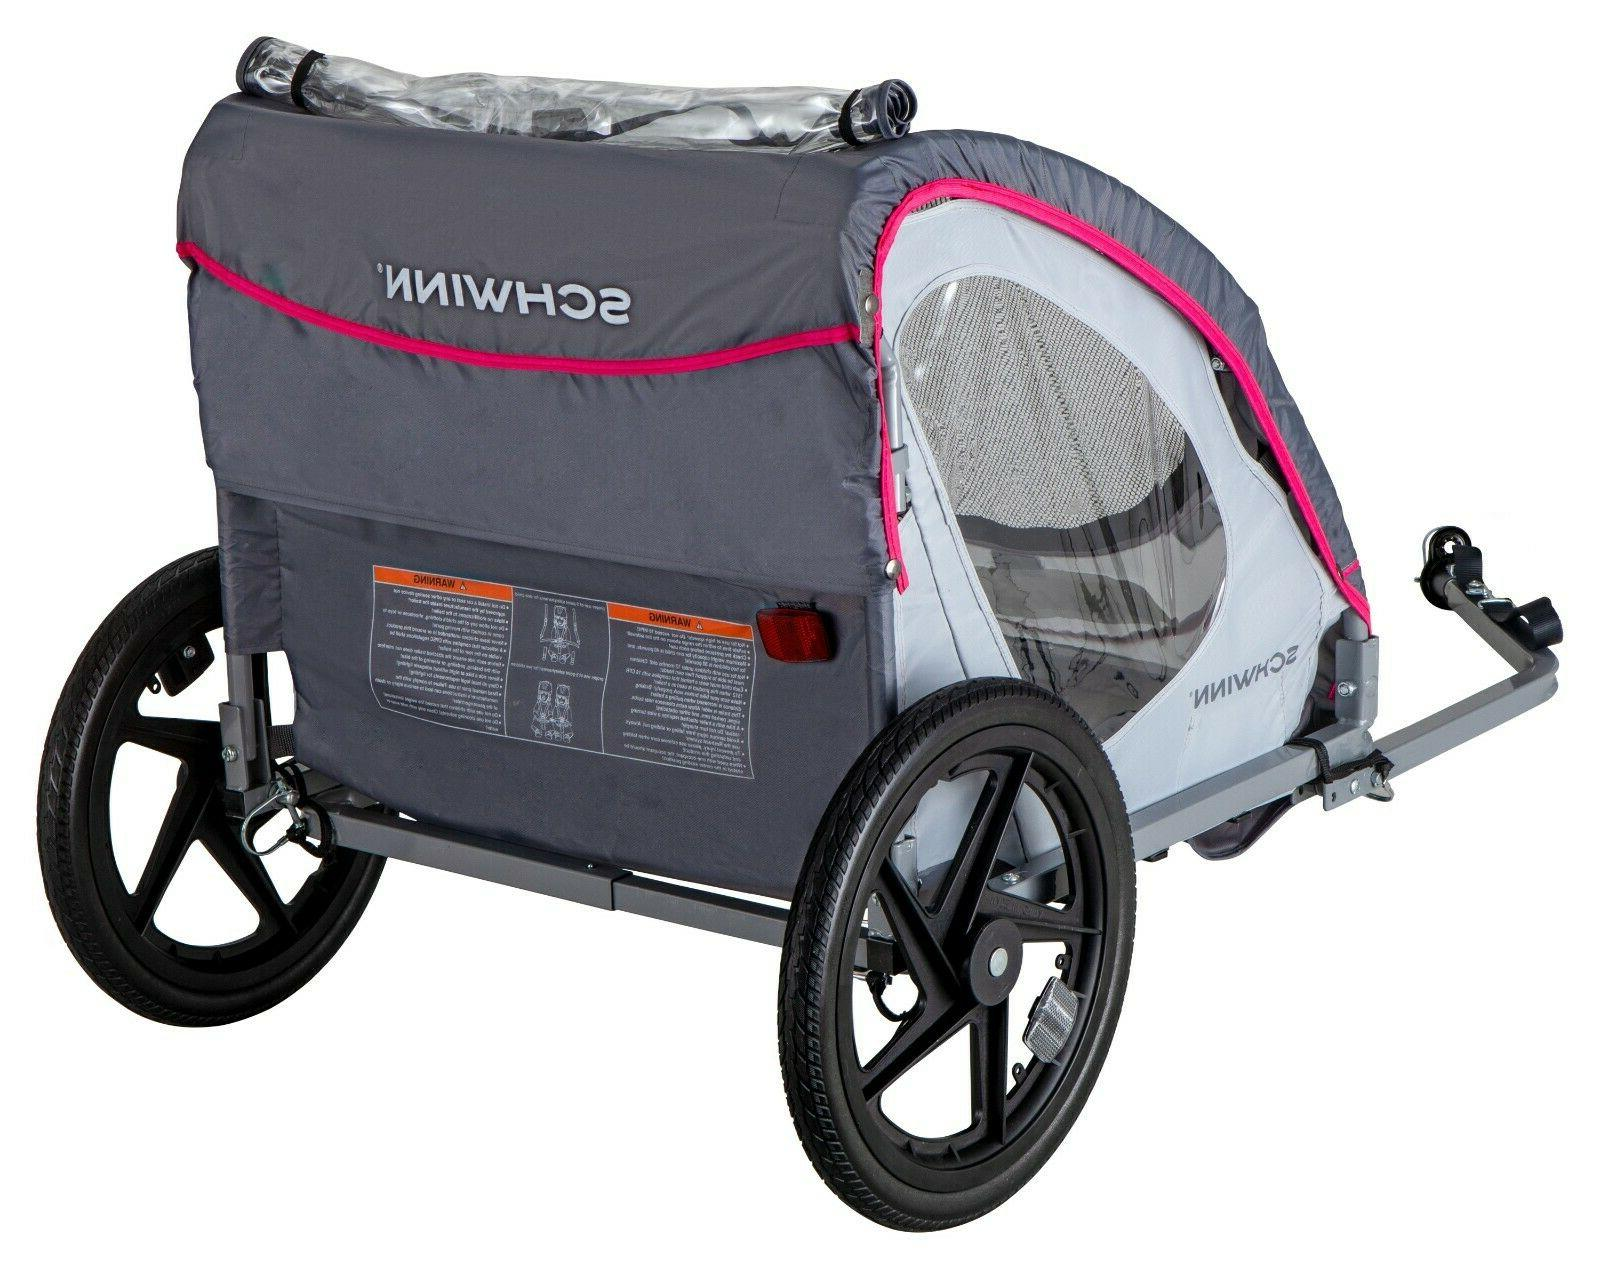 Schwinn Shuttle trailer 2